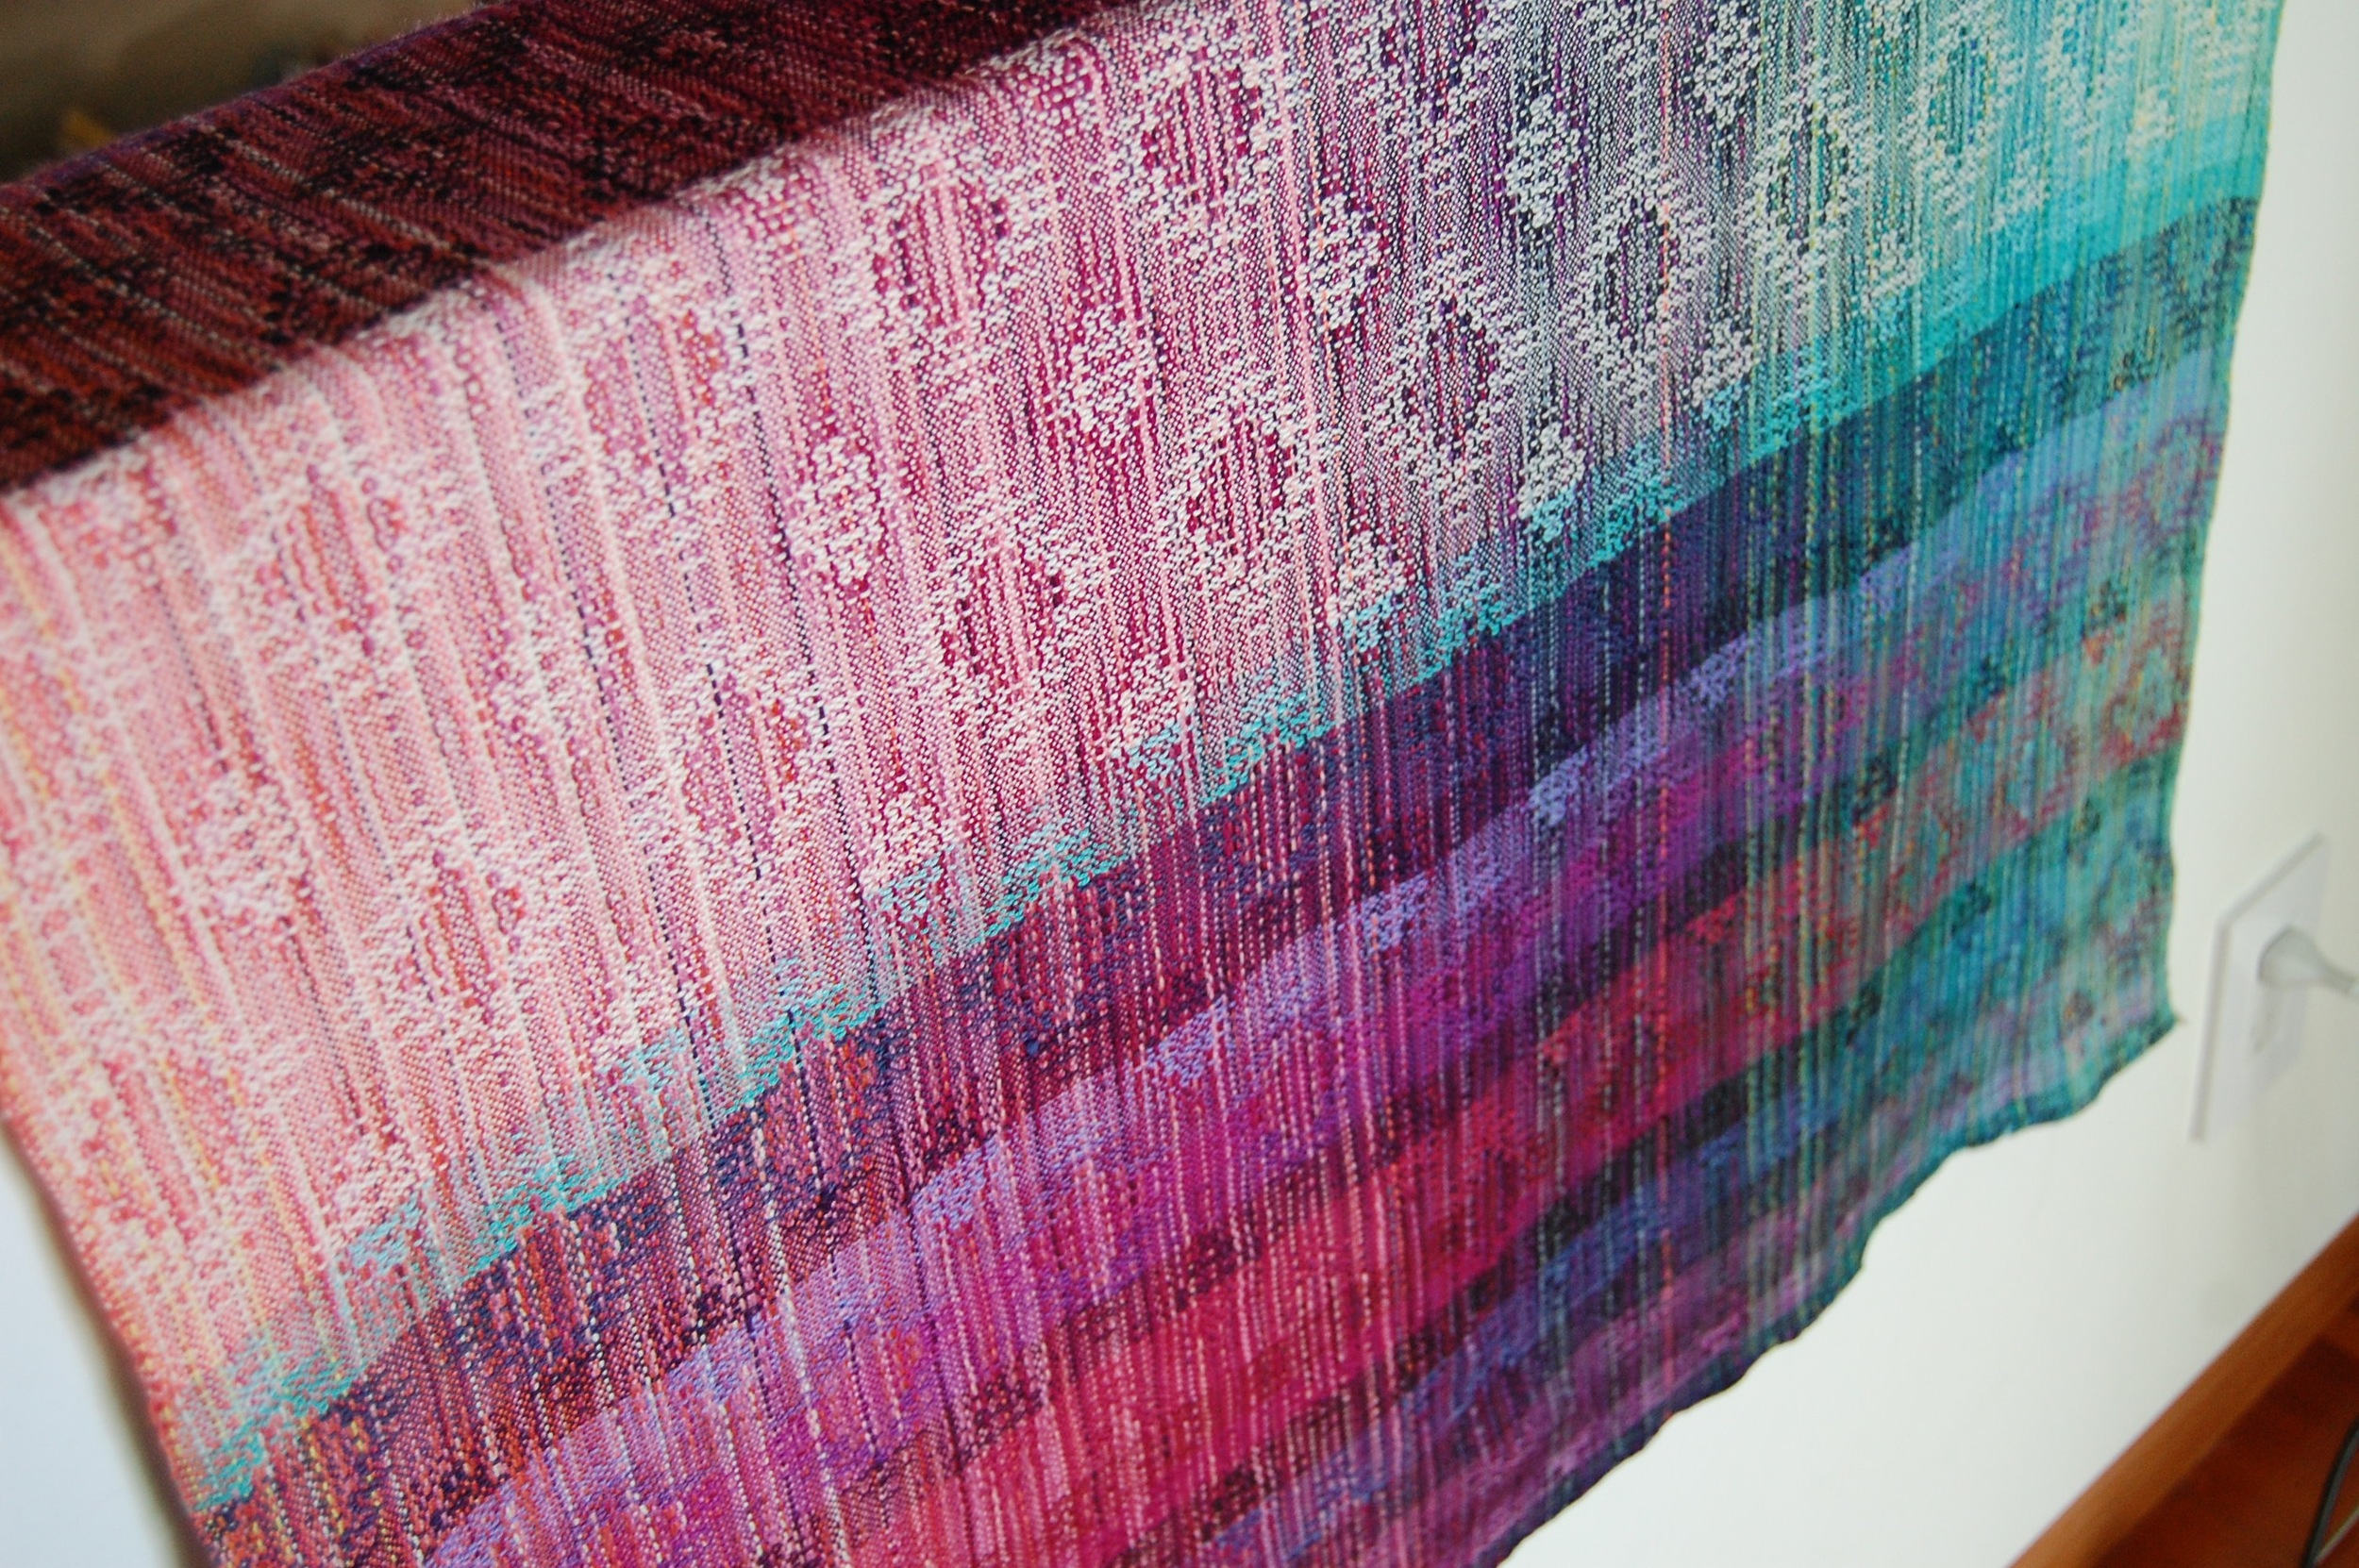 Another view of the weft-sample piece - shown here after wet-finishing.